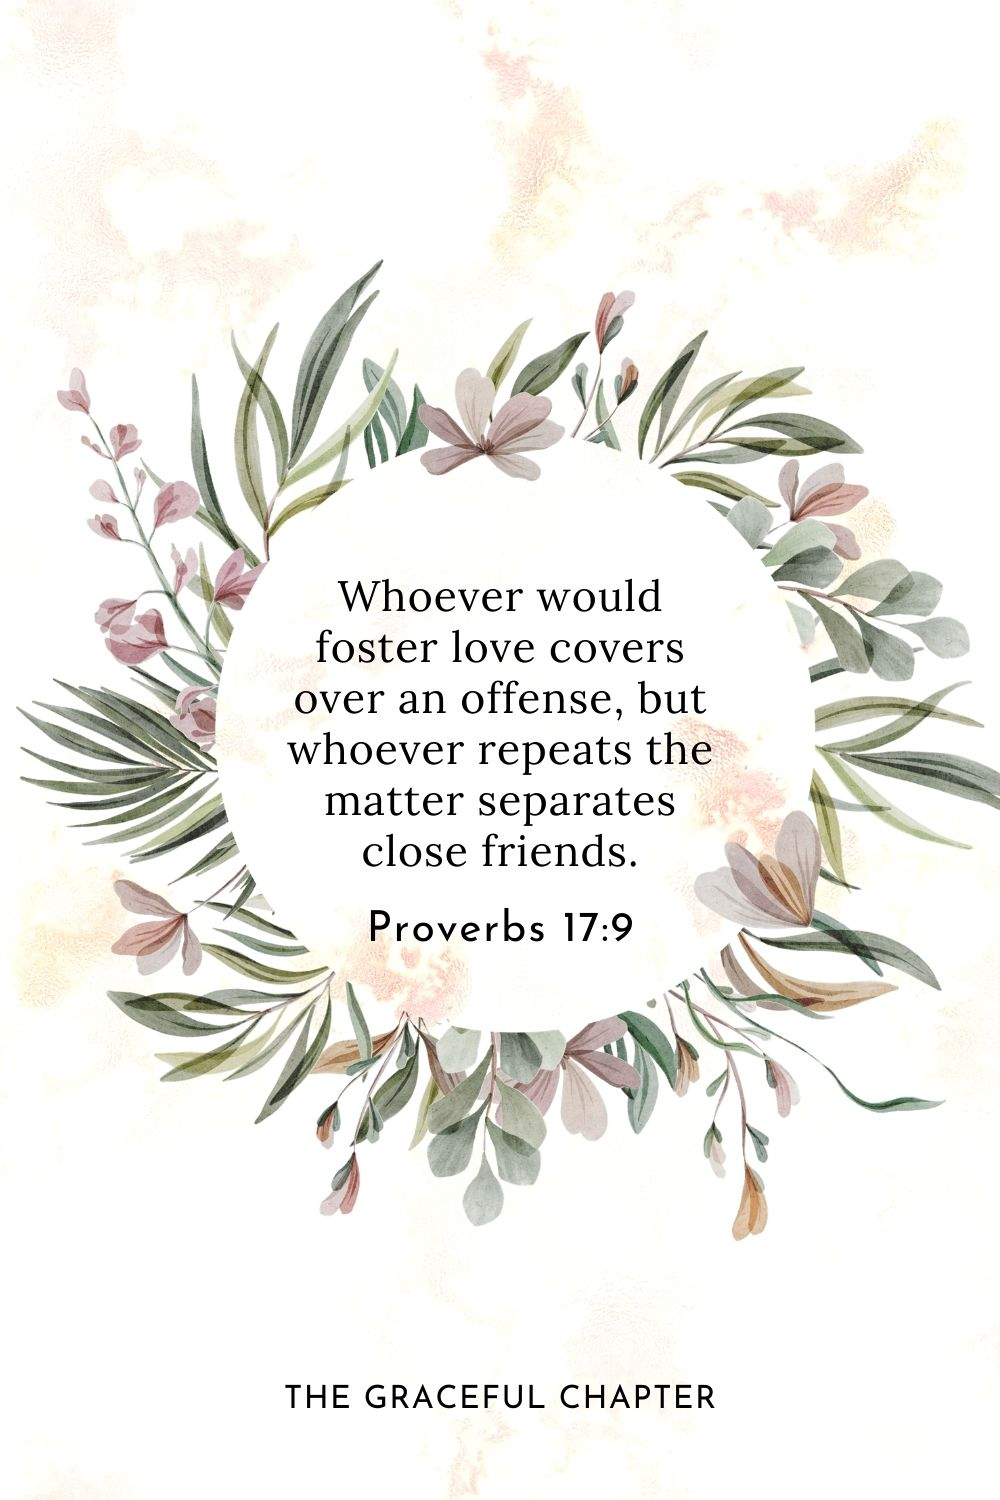 Whoever would foster love covers over an offense, but whoever repeats the matter separates close friends. Proverbs 17:9